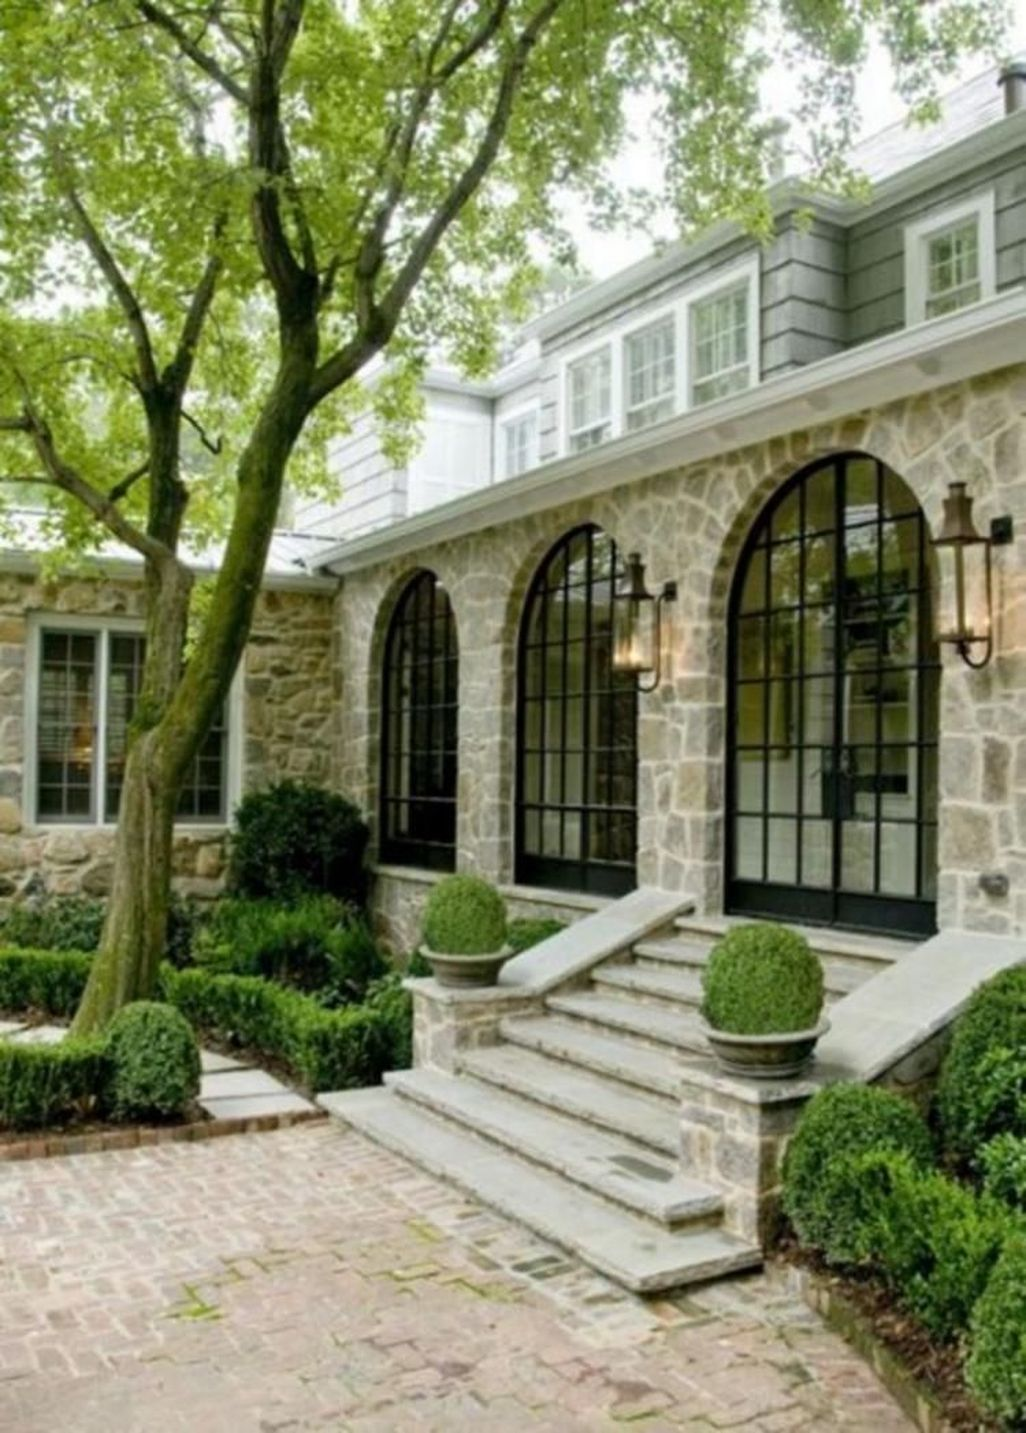 Awesome 48 Most Unique Exterior Stone Ideas For Amazing Home More At Https Trendhomy Com 2018 05 18 48 Most U House Exterior Exterior Design Beautiful Homes